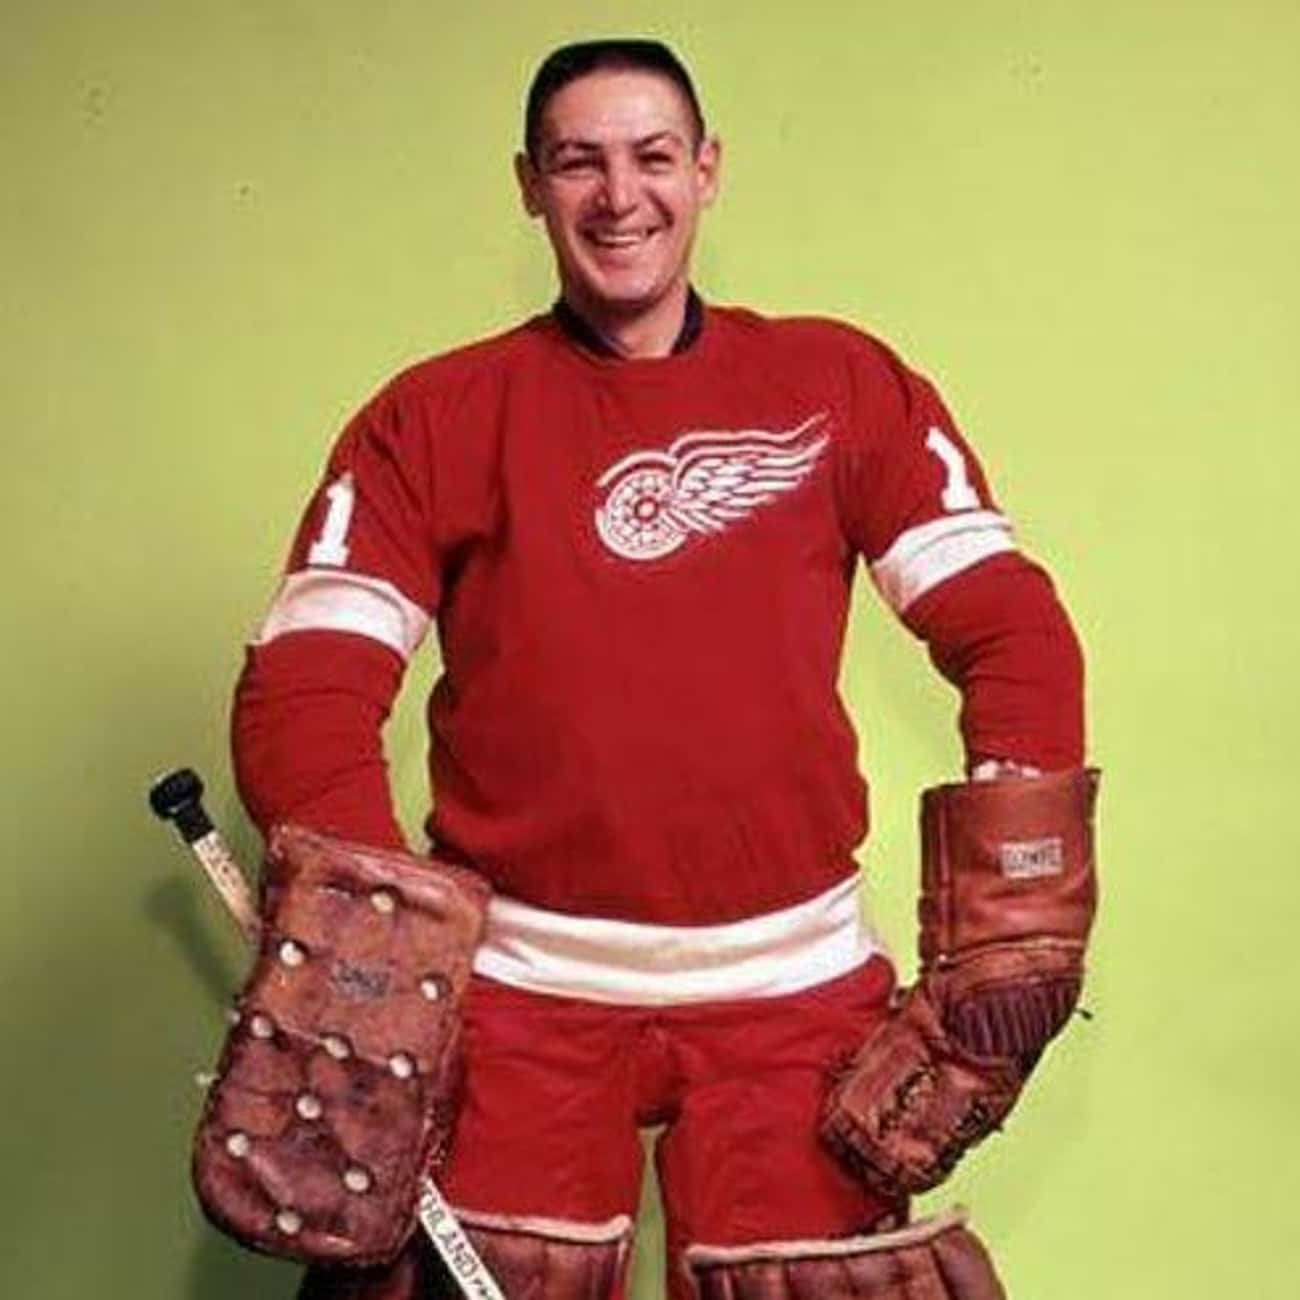 Terry Sawchuk is listed (or ranked) 4 on the list The Best Athletes Who Wore #1